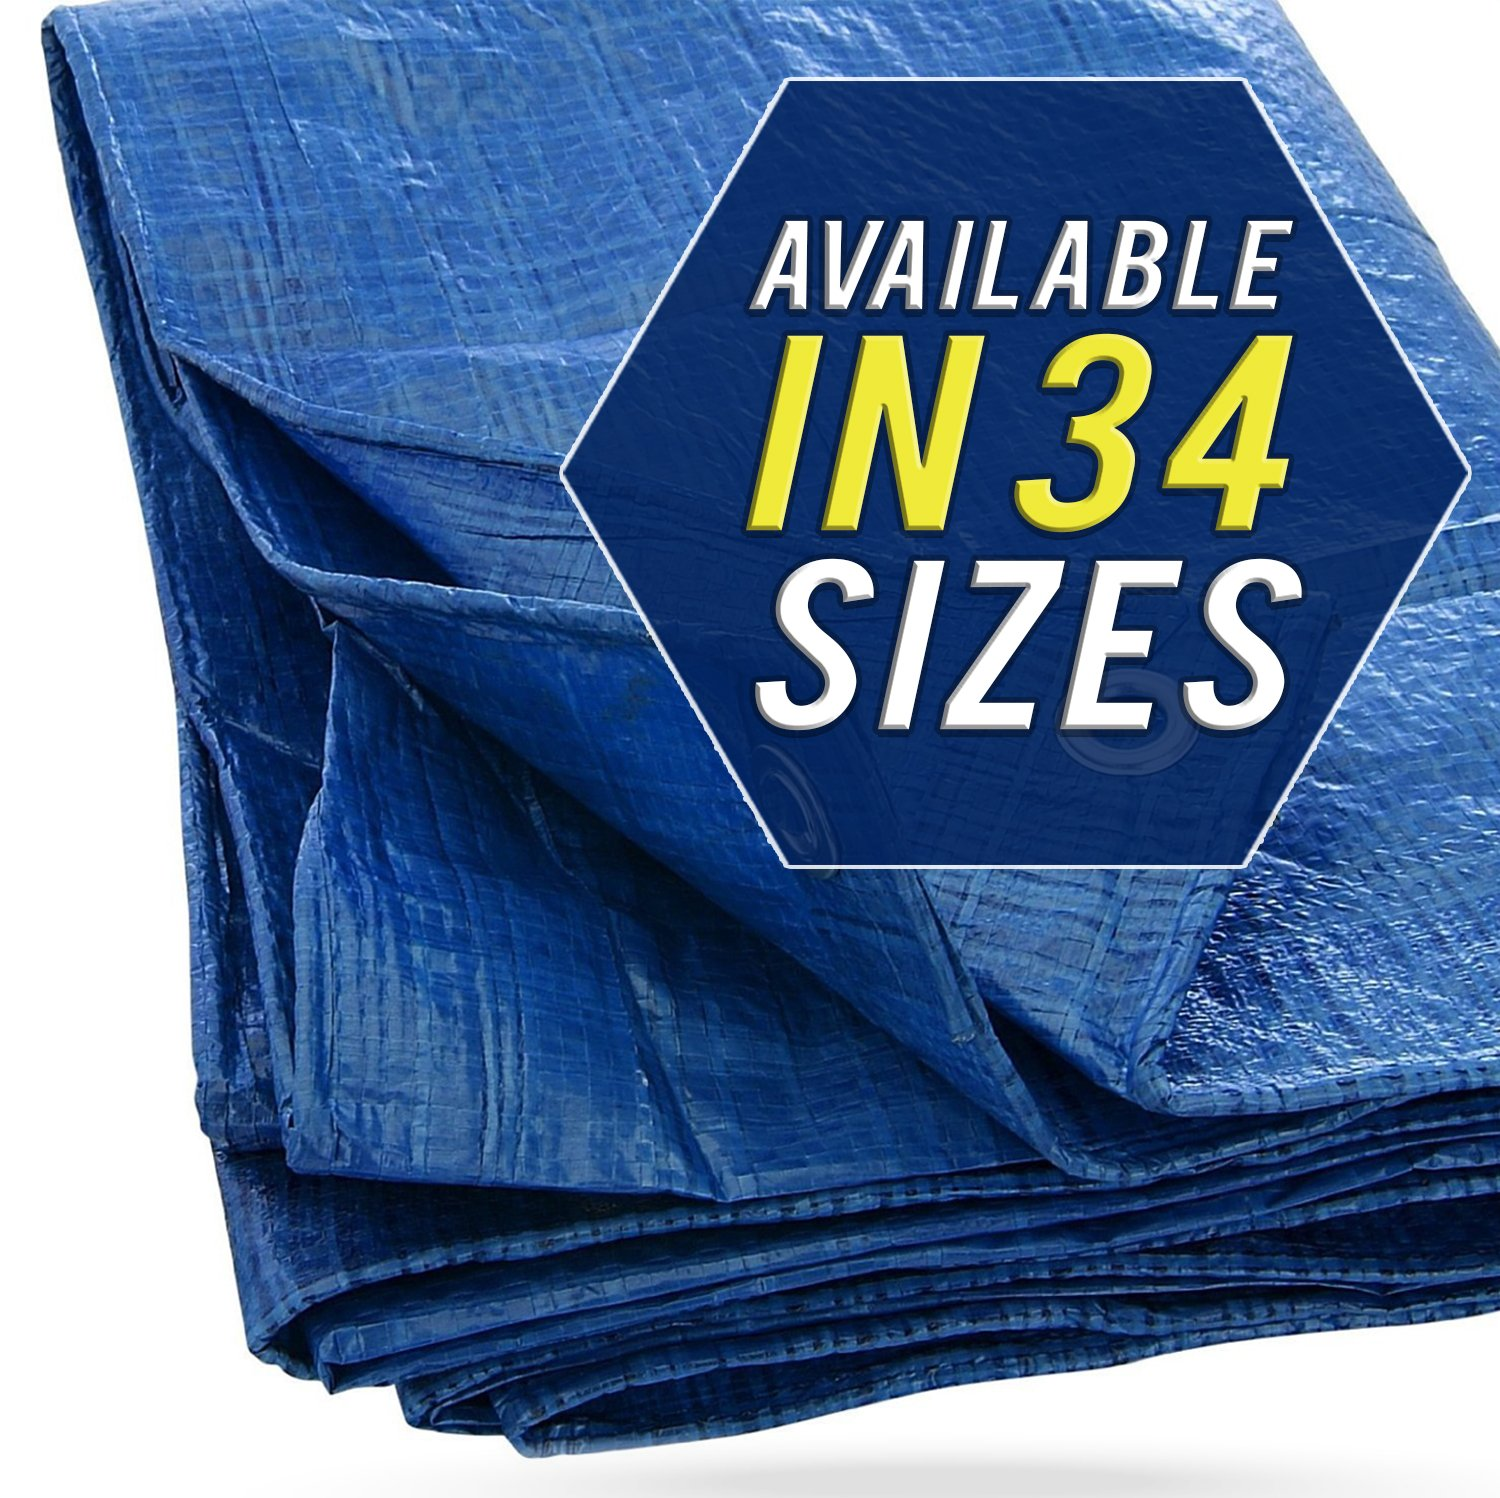 30X50 Blue Tarp Tarpaulin Canopy Tent, Boat. RV or Pool Cover by Trademark Supplies